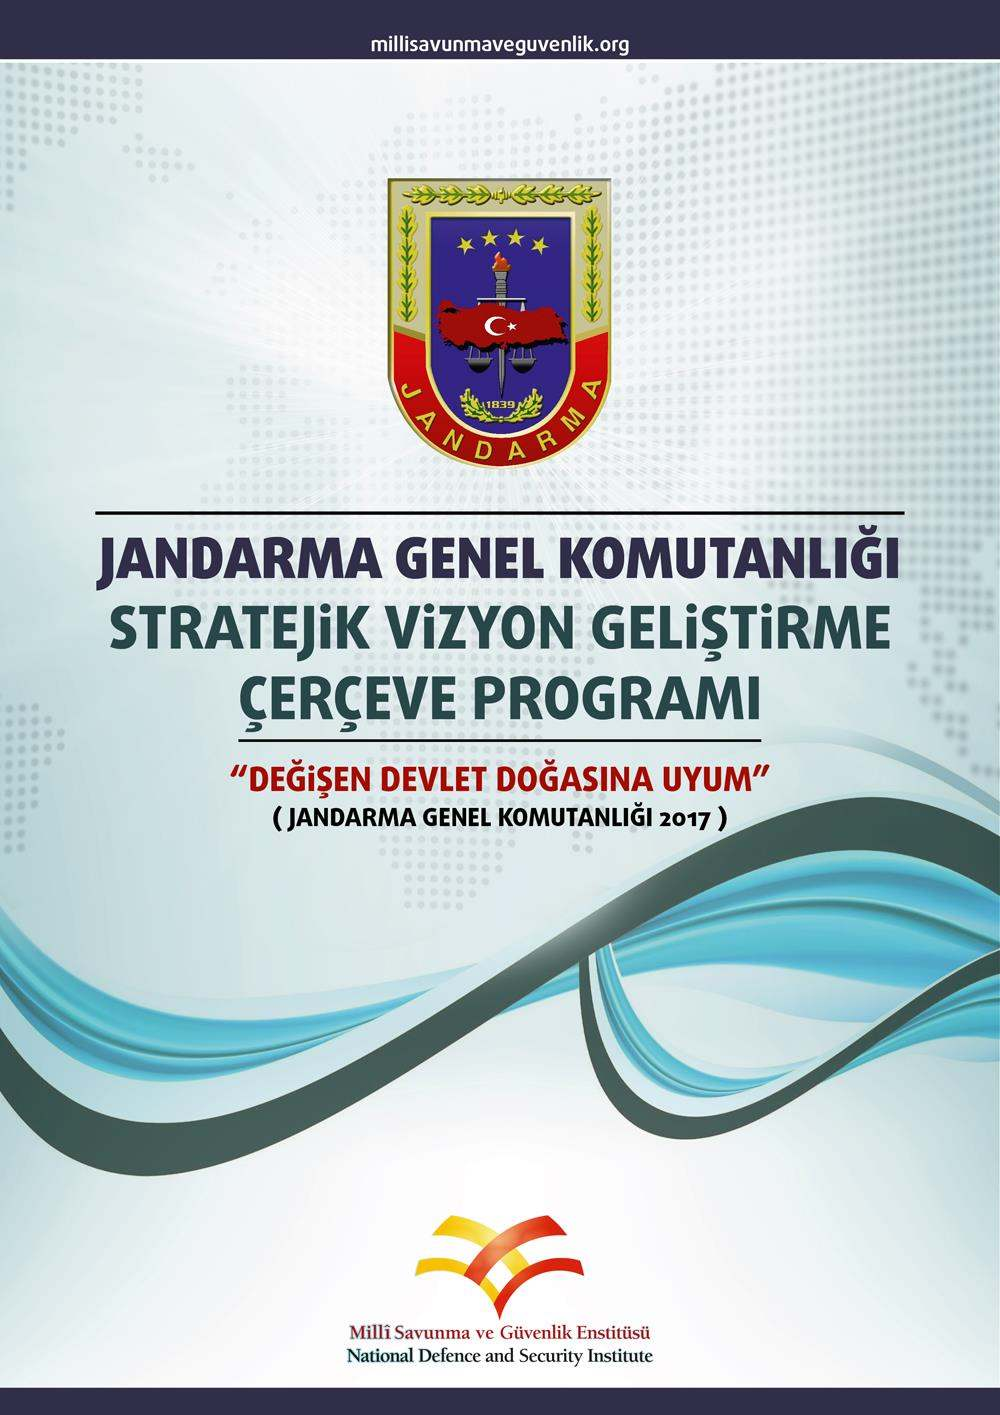 Strategic Vision Development Pramework Program | Gendarma General Command